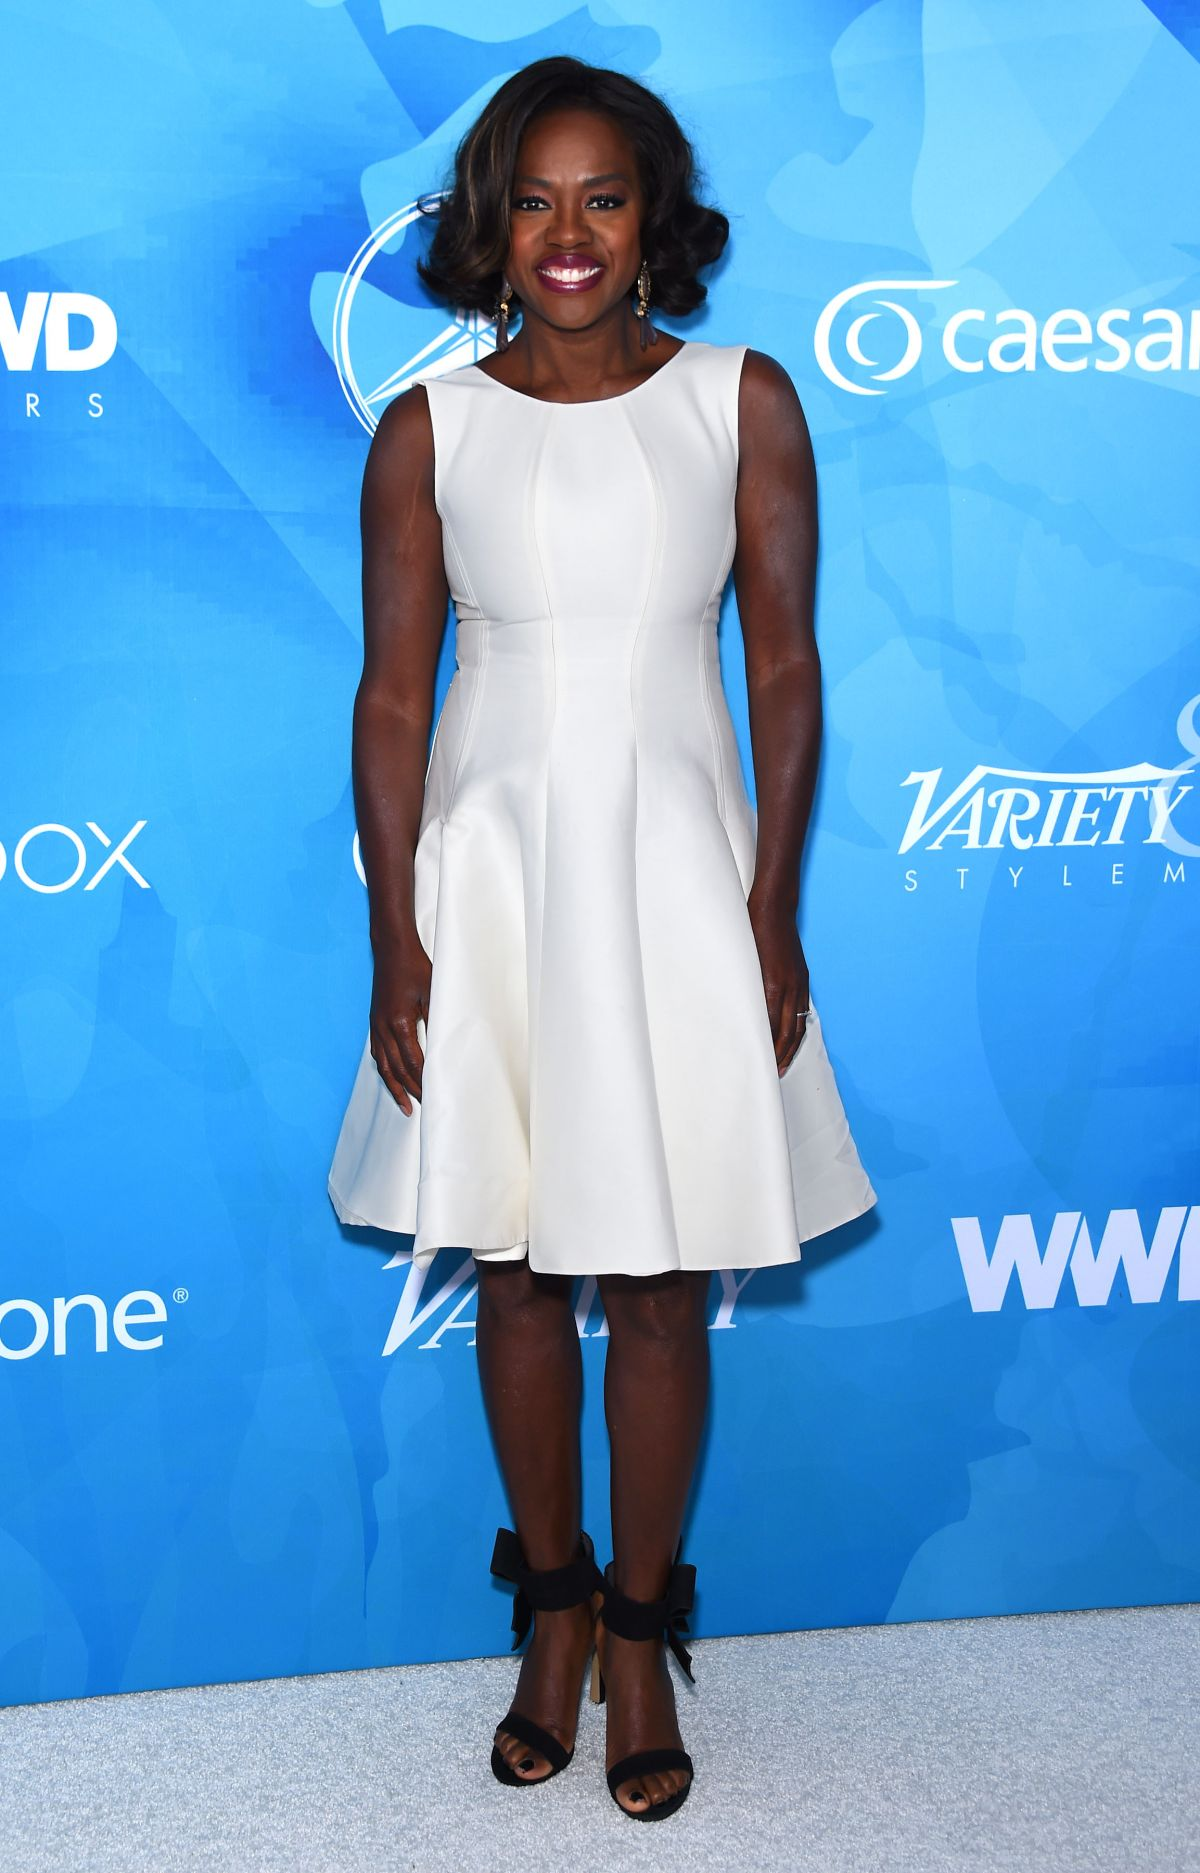 VIOLA DAVIS at WWD and Variety's Stylemakers Event in Culver City 11/19/2015